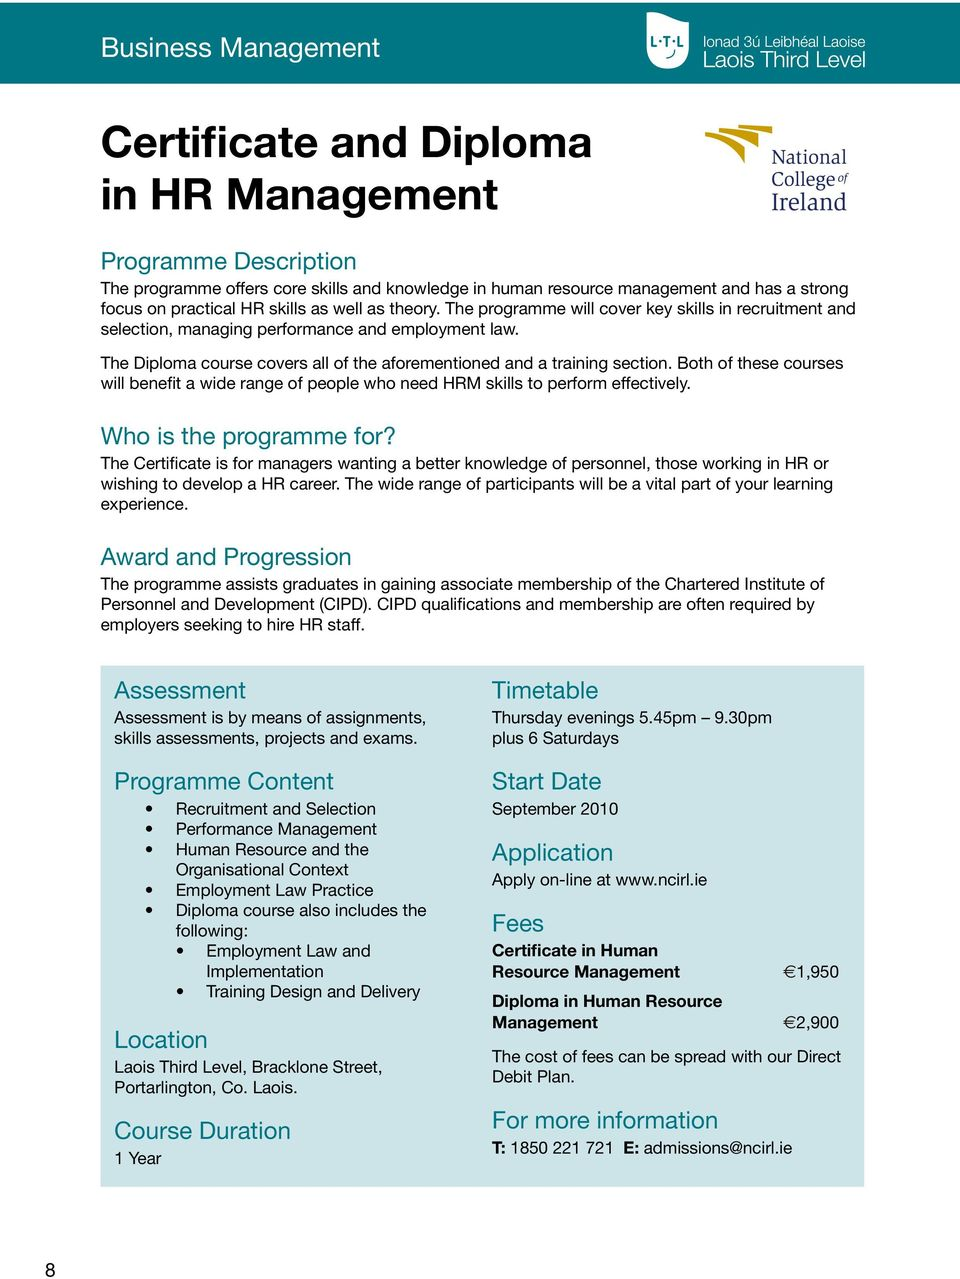 Both of these courses will benefit a wide range of people who need HRM skills to perform effectively. Who is the programme for?